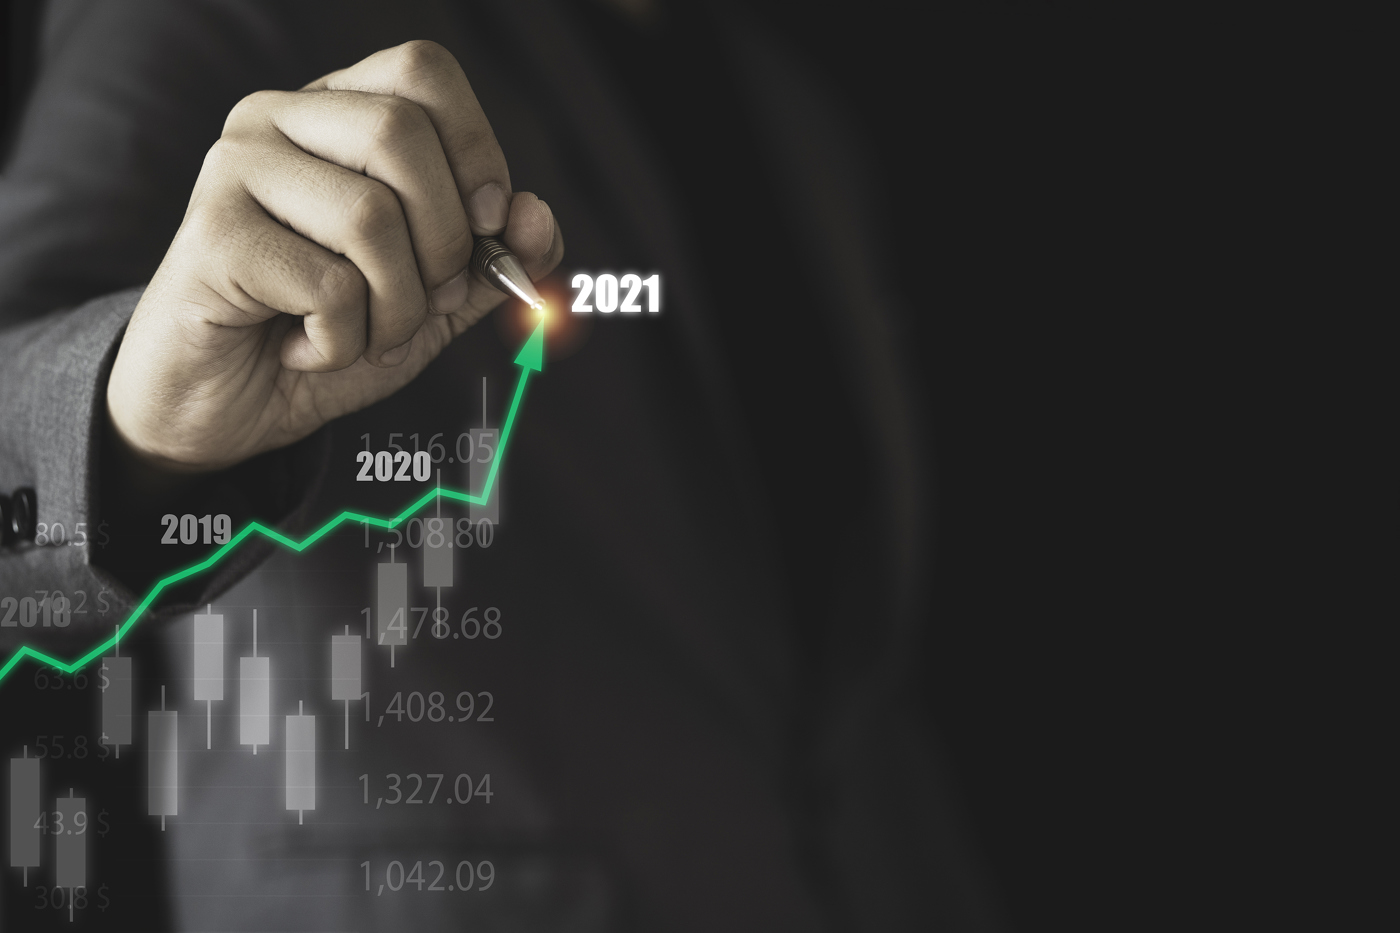 Investor with bullish 2020 to 2021 trendline